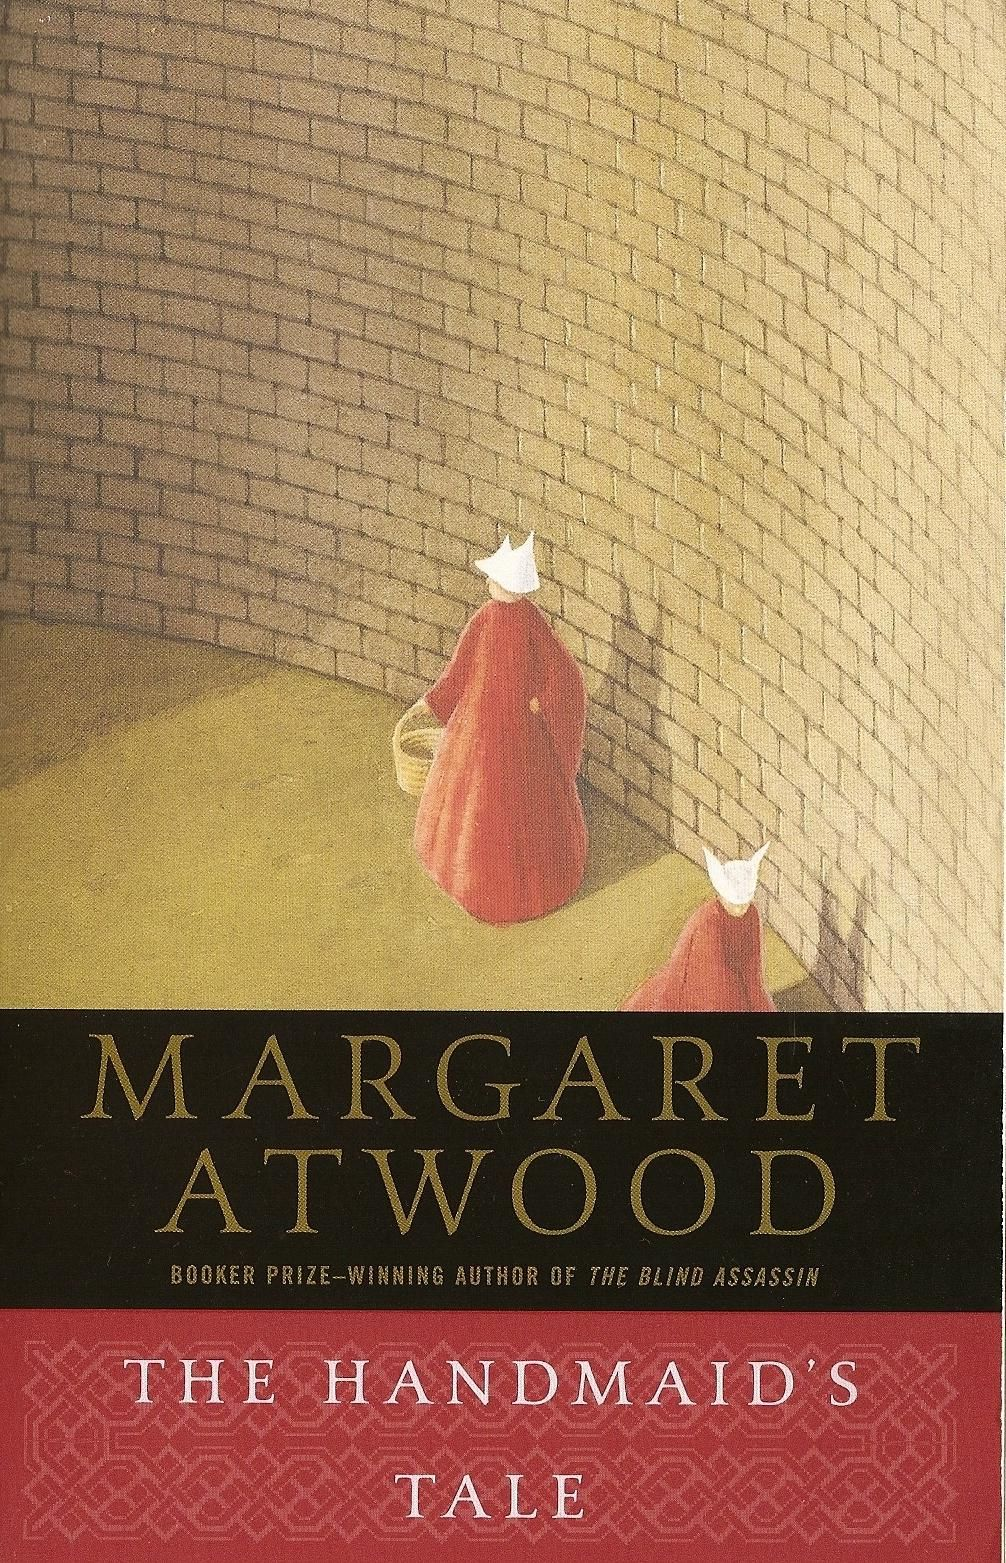 Image result for the handmaid's tale cover